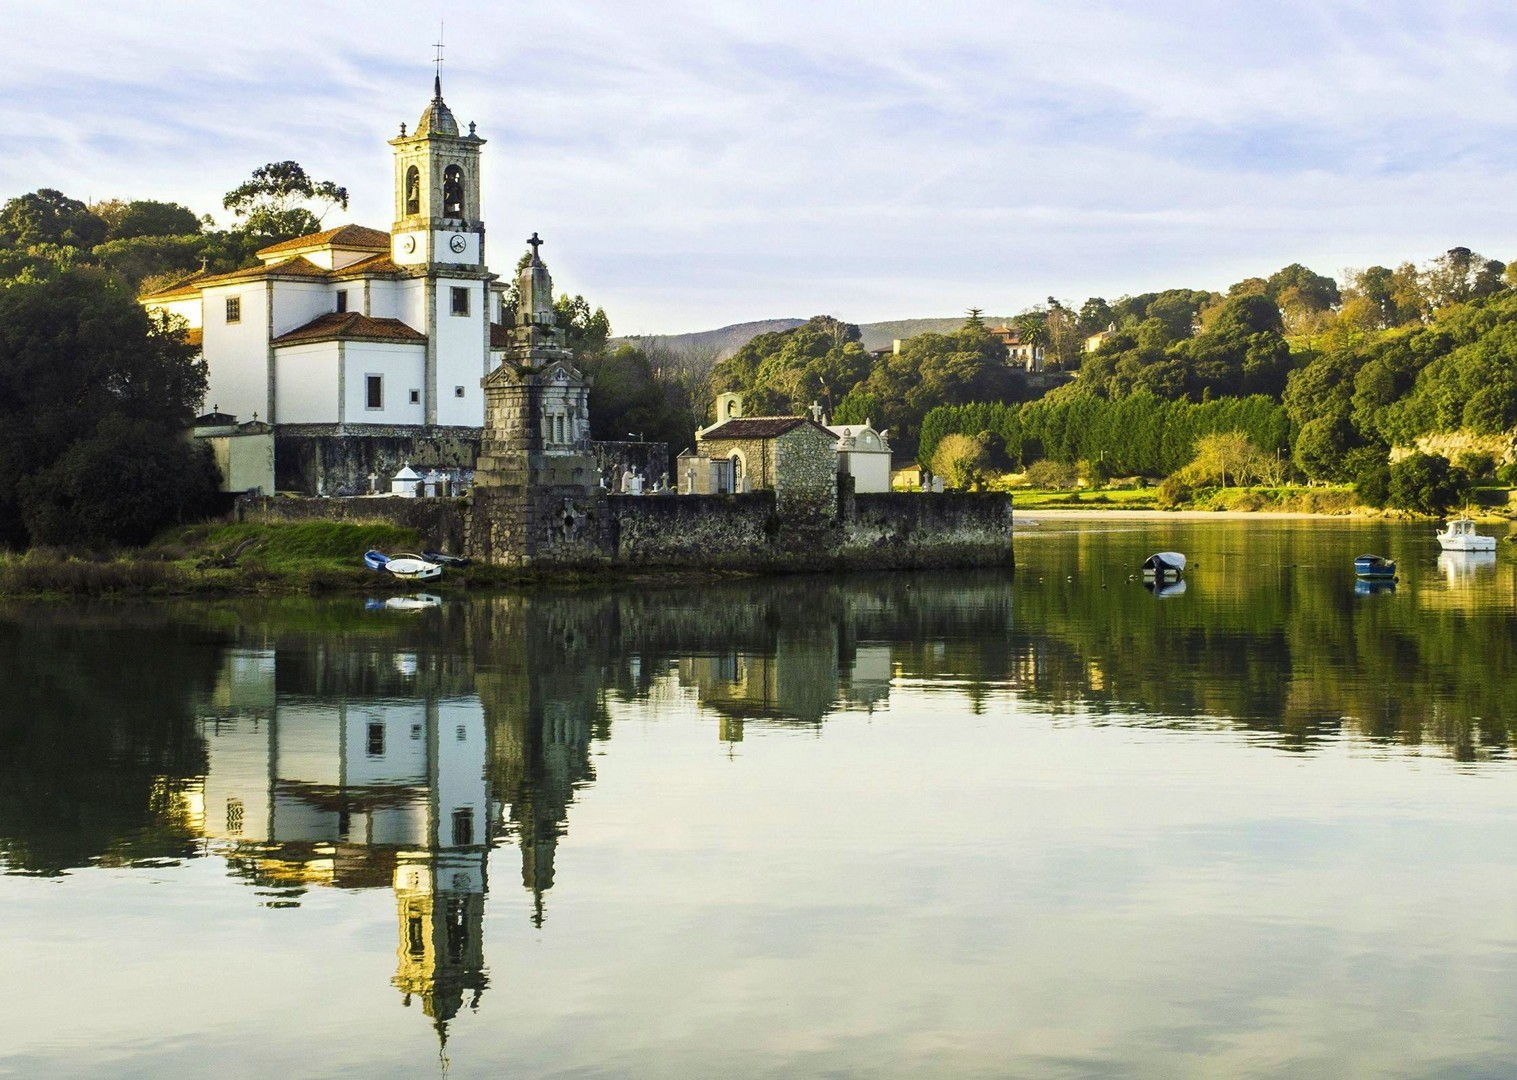 _Holiday.616.13996.jpg - Northern Spain - Asturian Coastal Ride - Self-Guided Family Cycling Holiday - Family Cycling